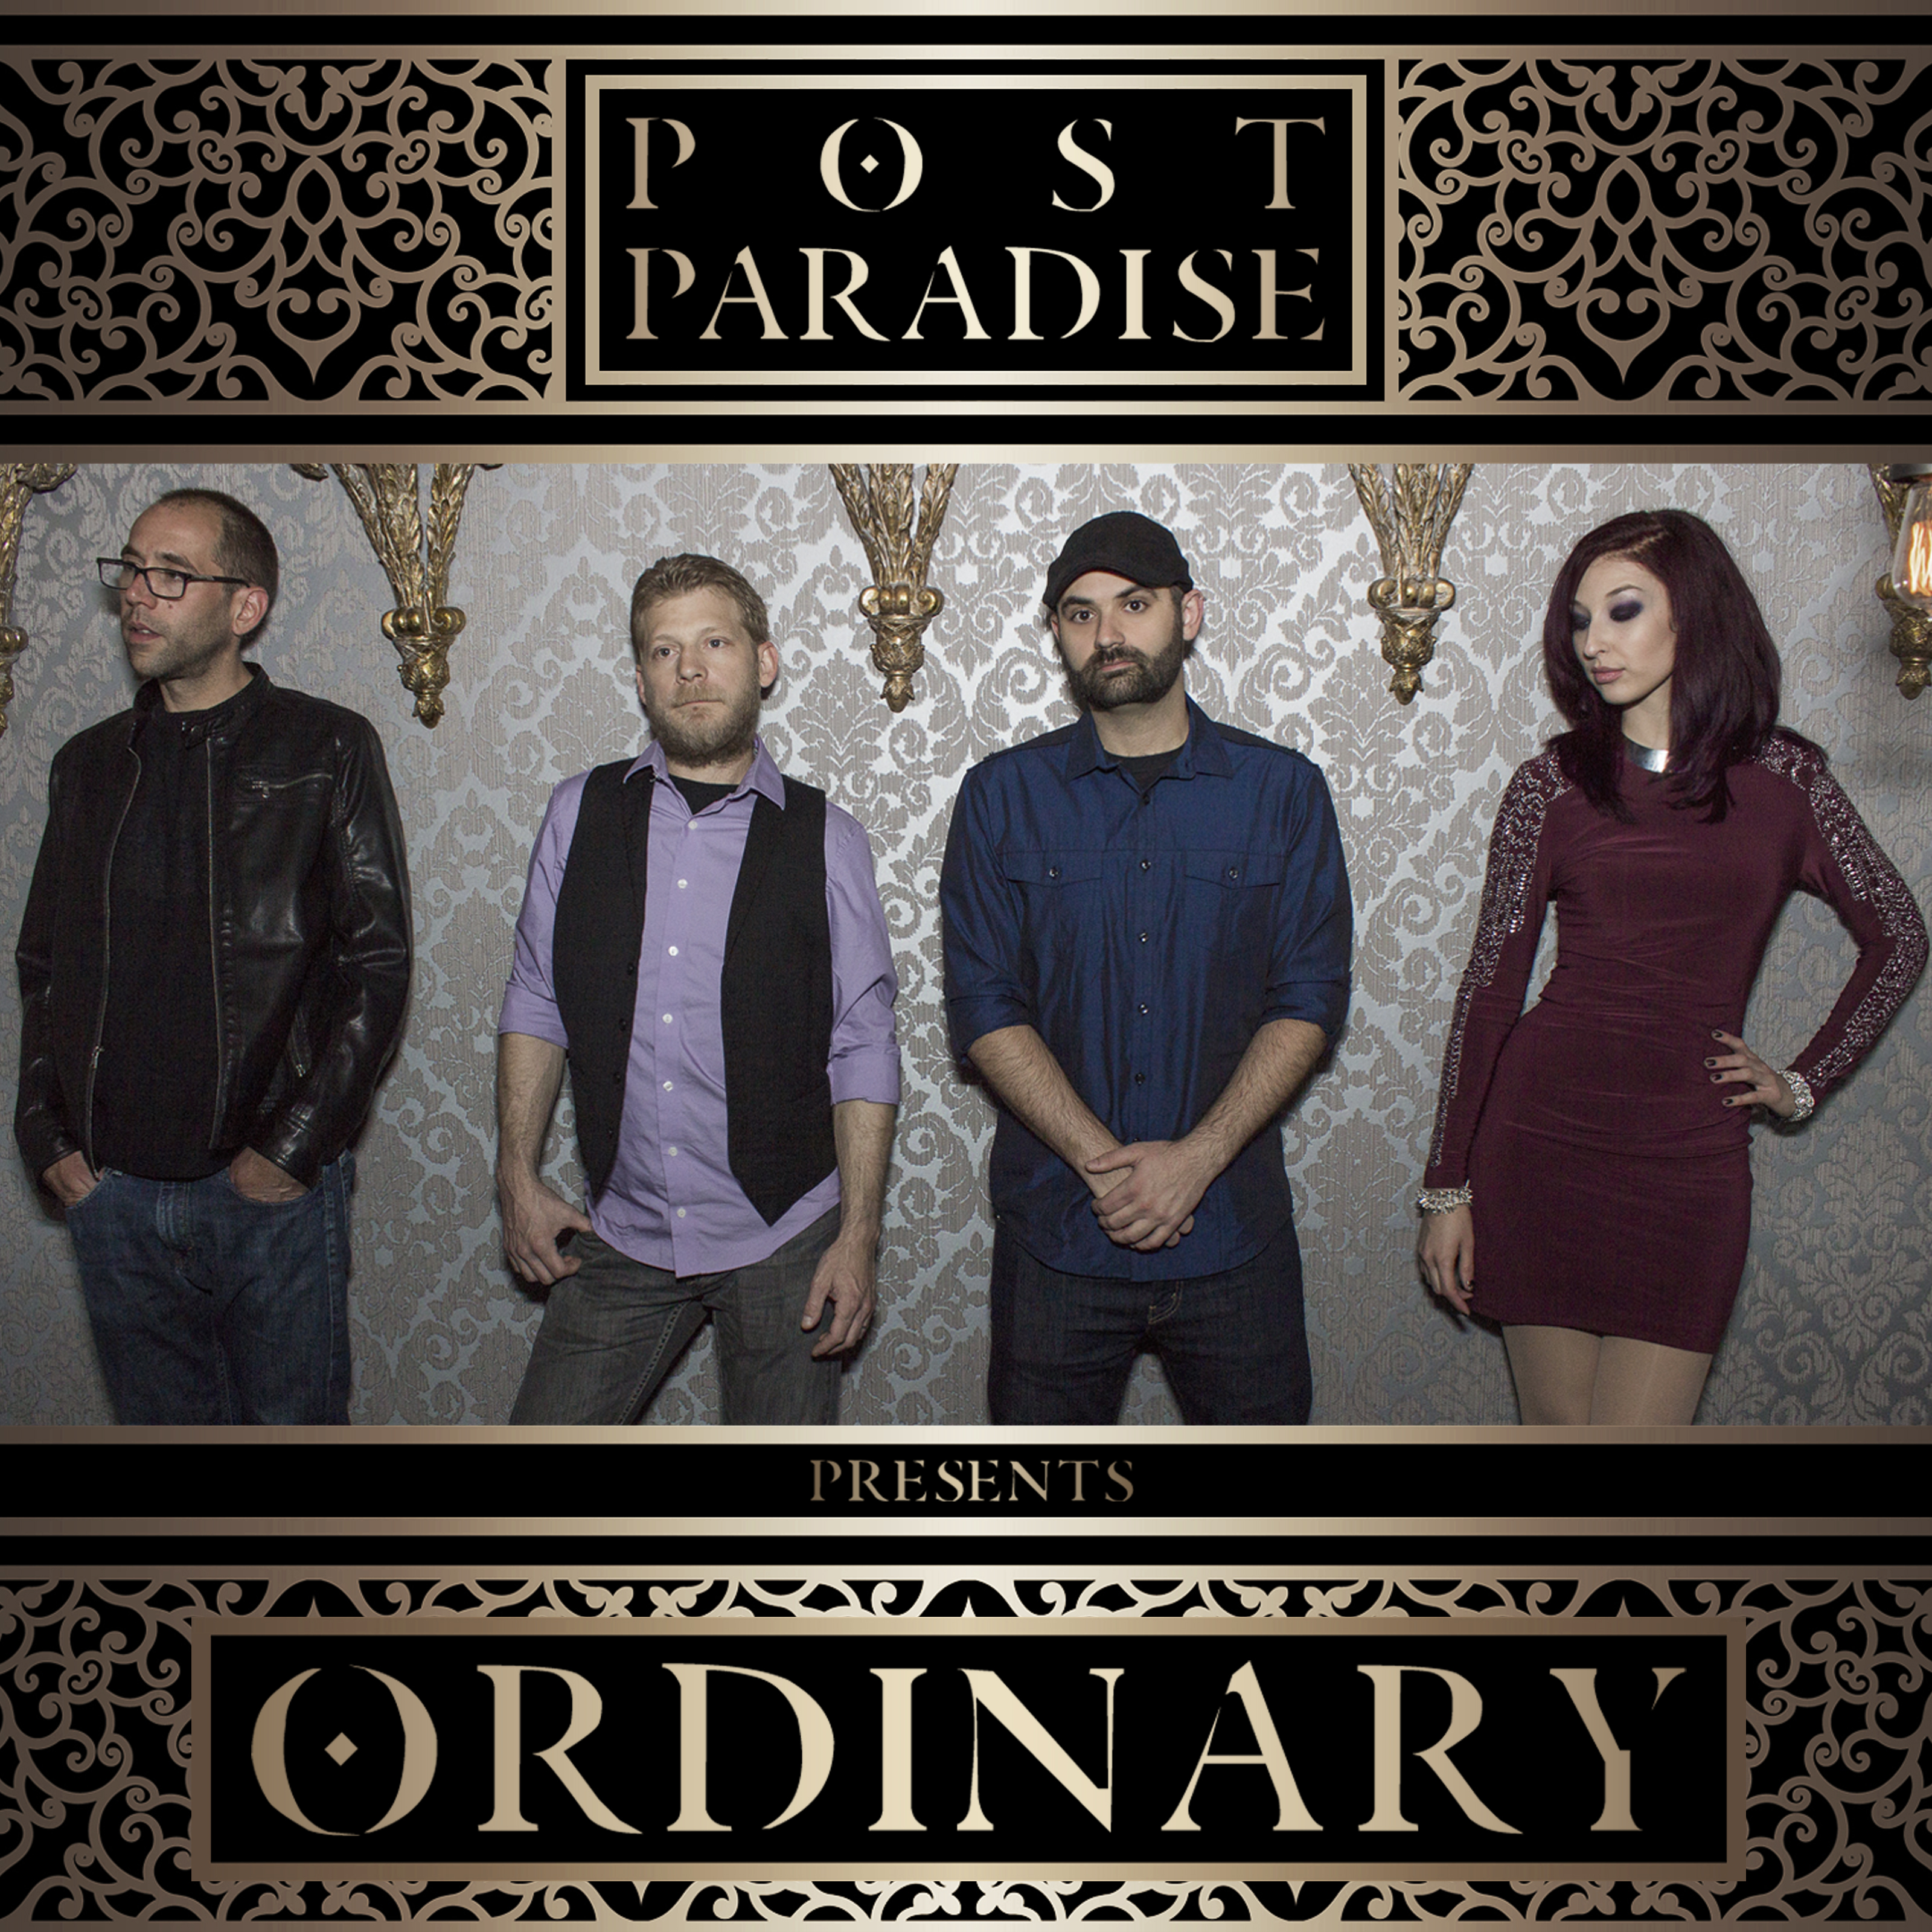 Post Paradise Release New Single